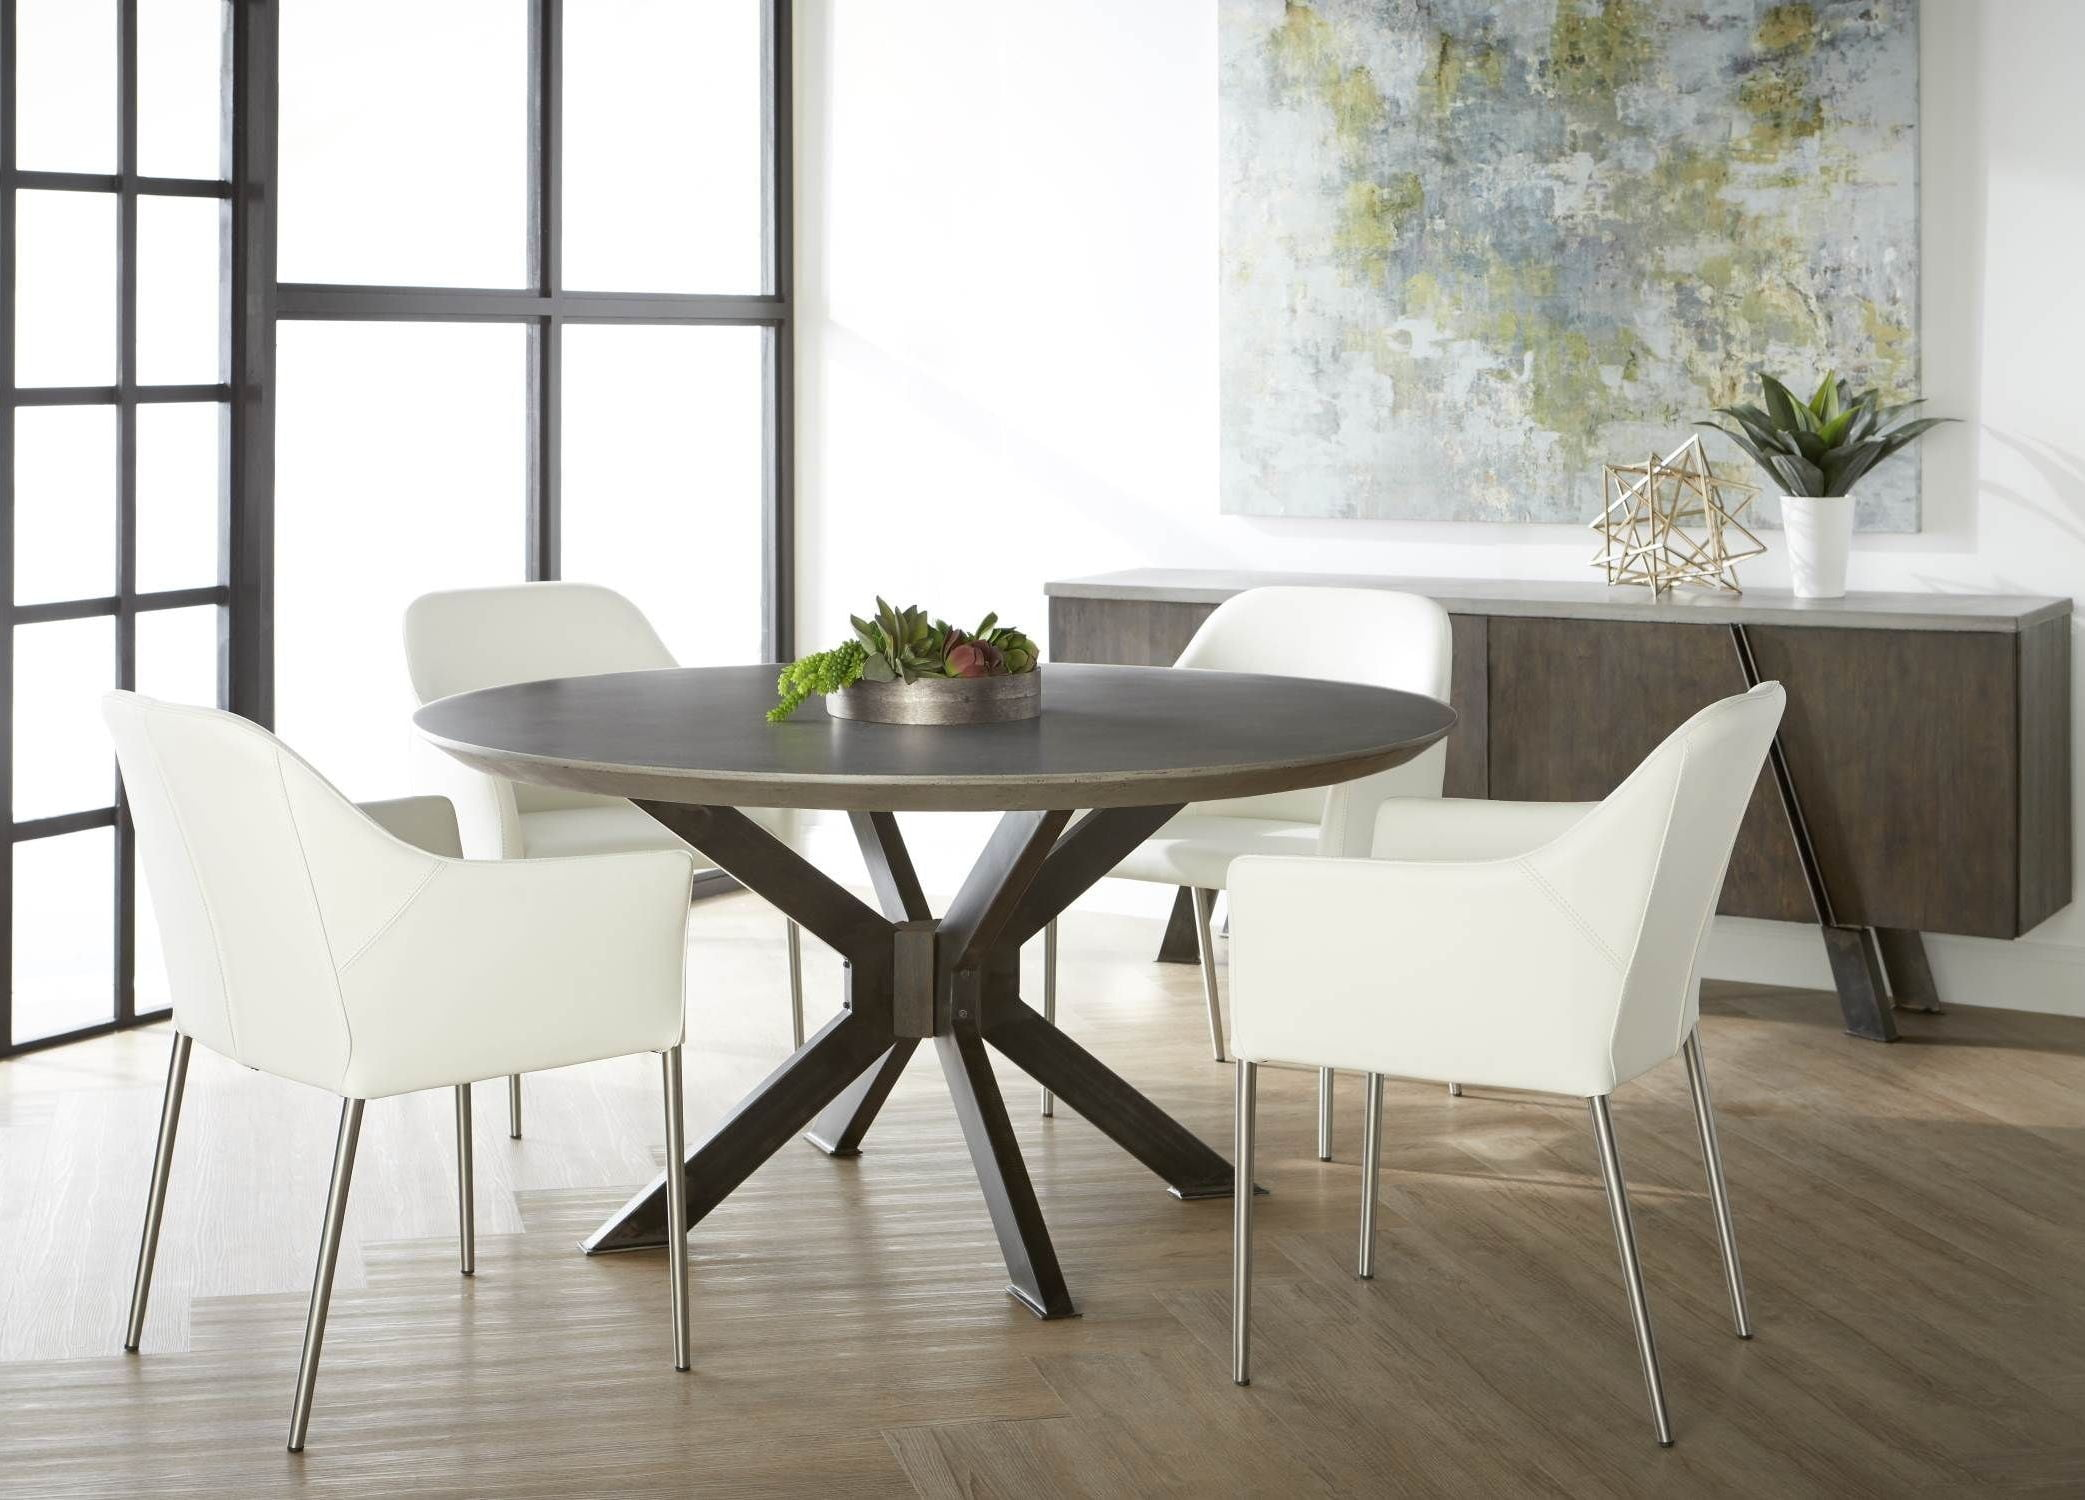 Industry Ash Grey Concrete Round Dining Room Set with Orchard High ...